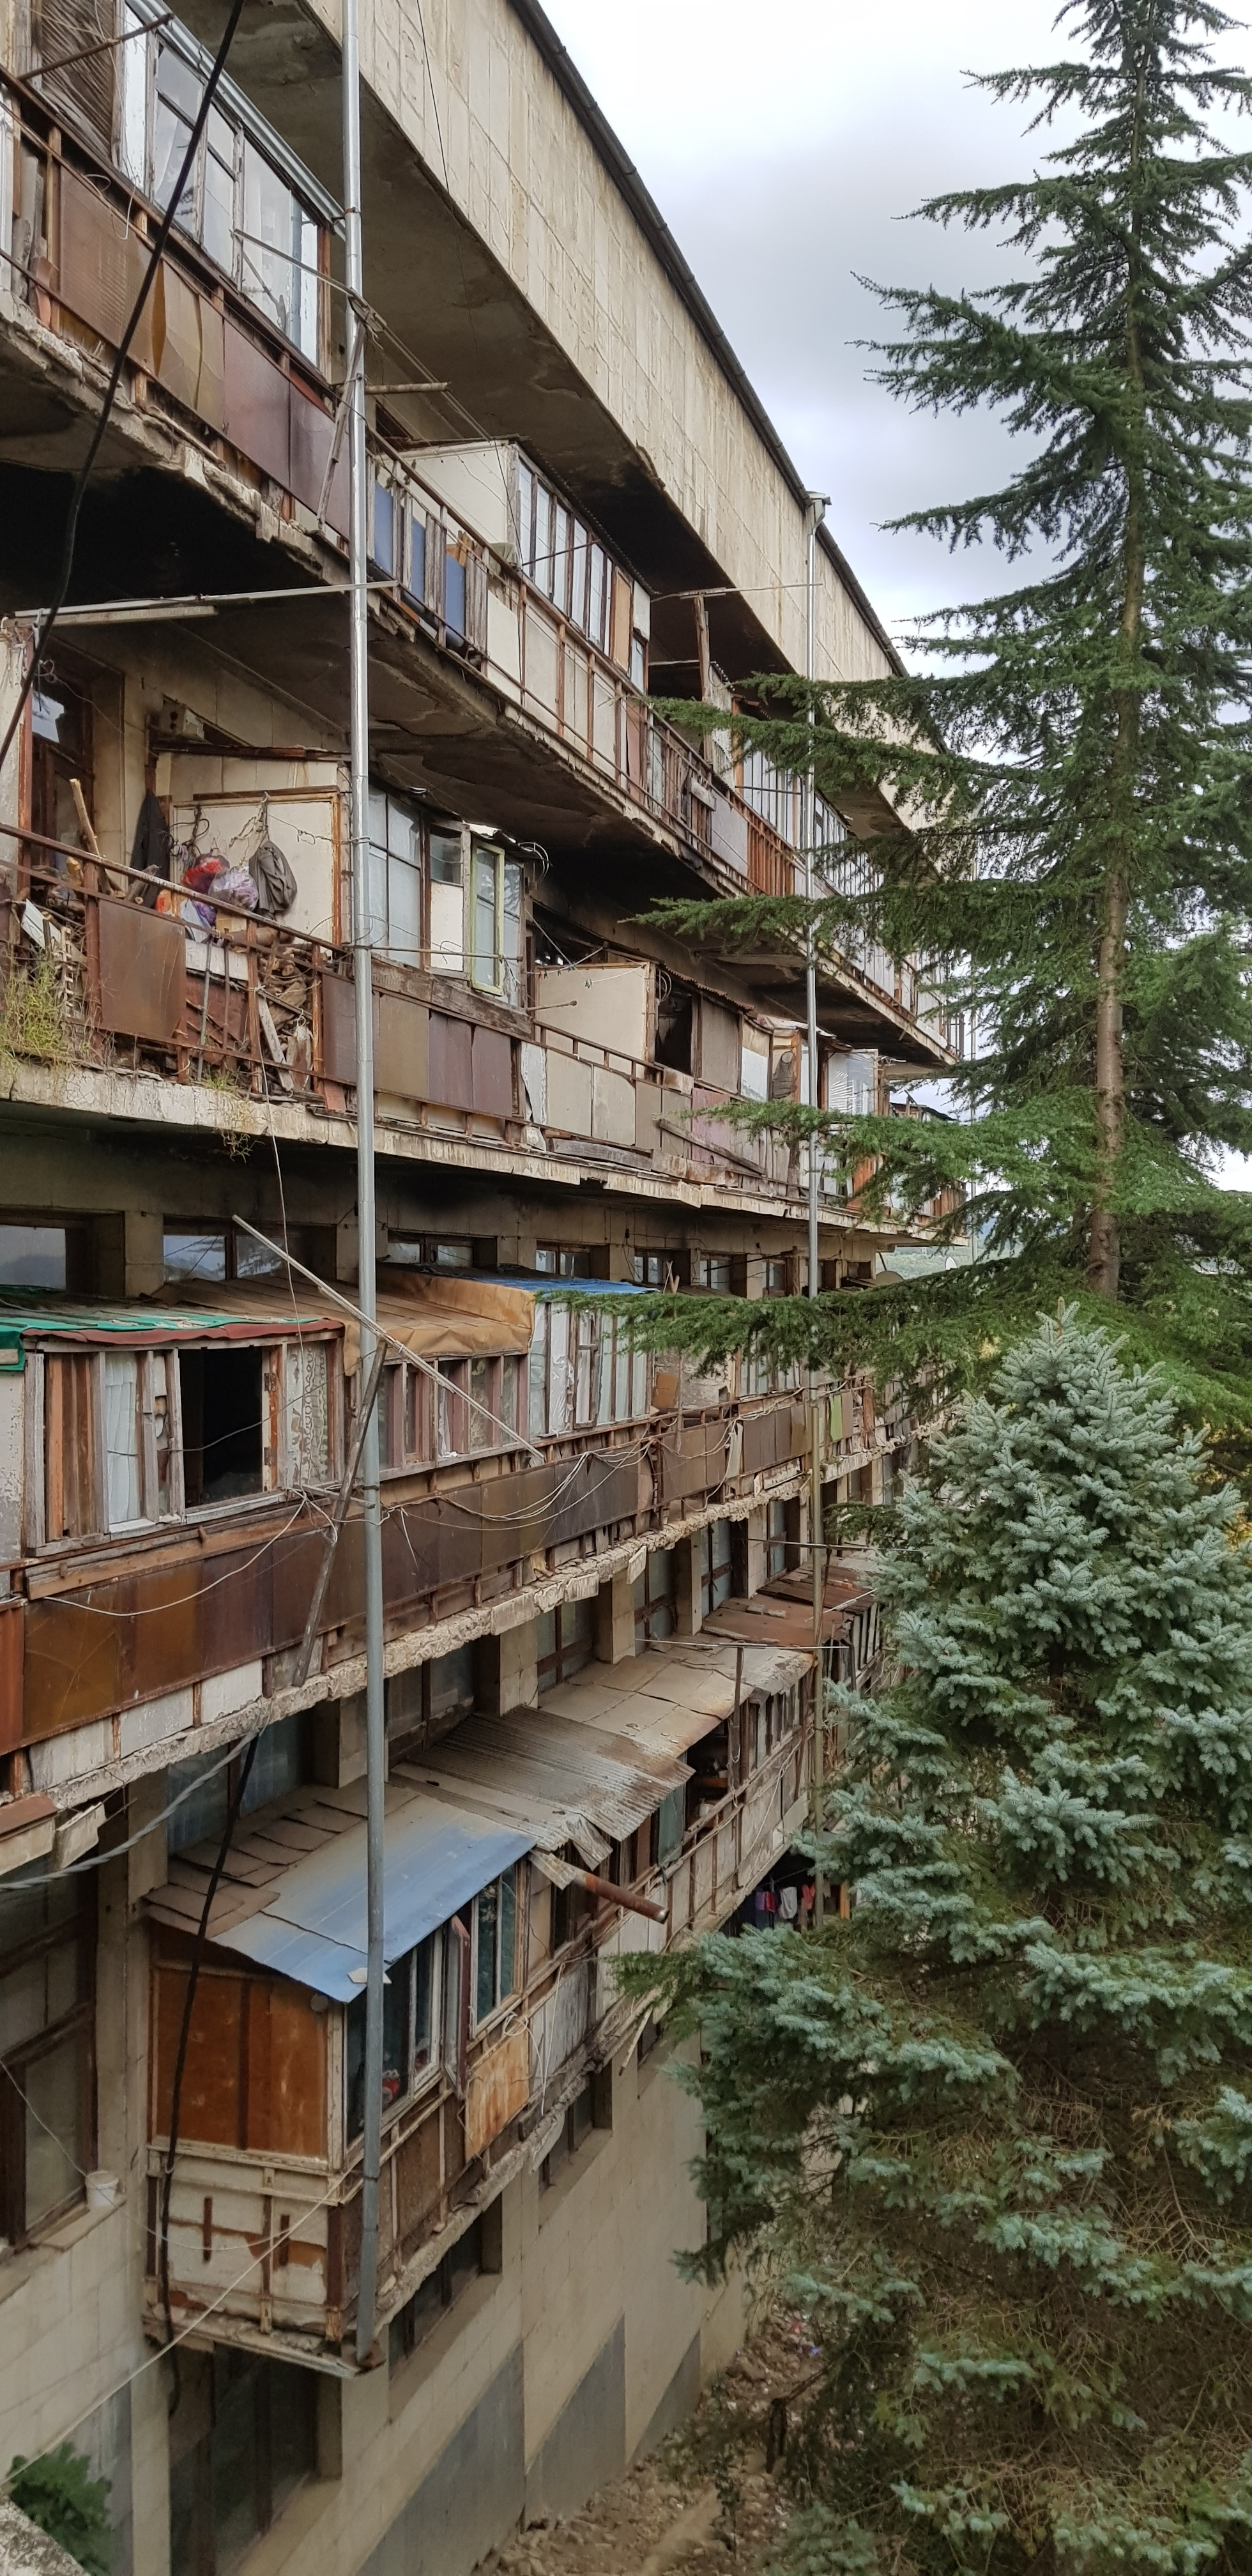 The now homes of people that escaped the Abkhazia war back in 1992.